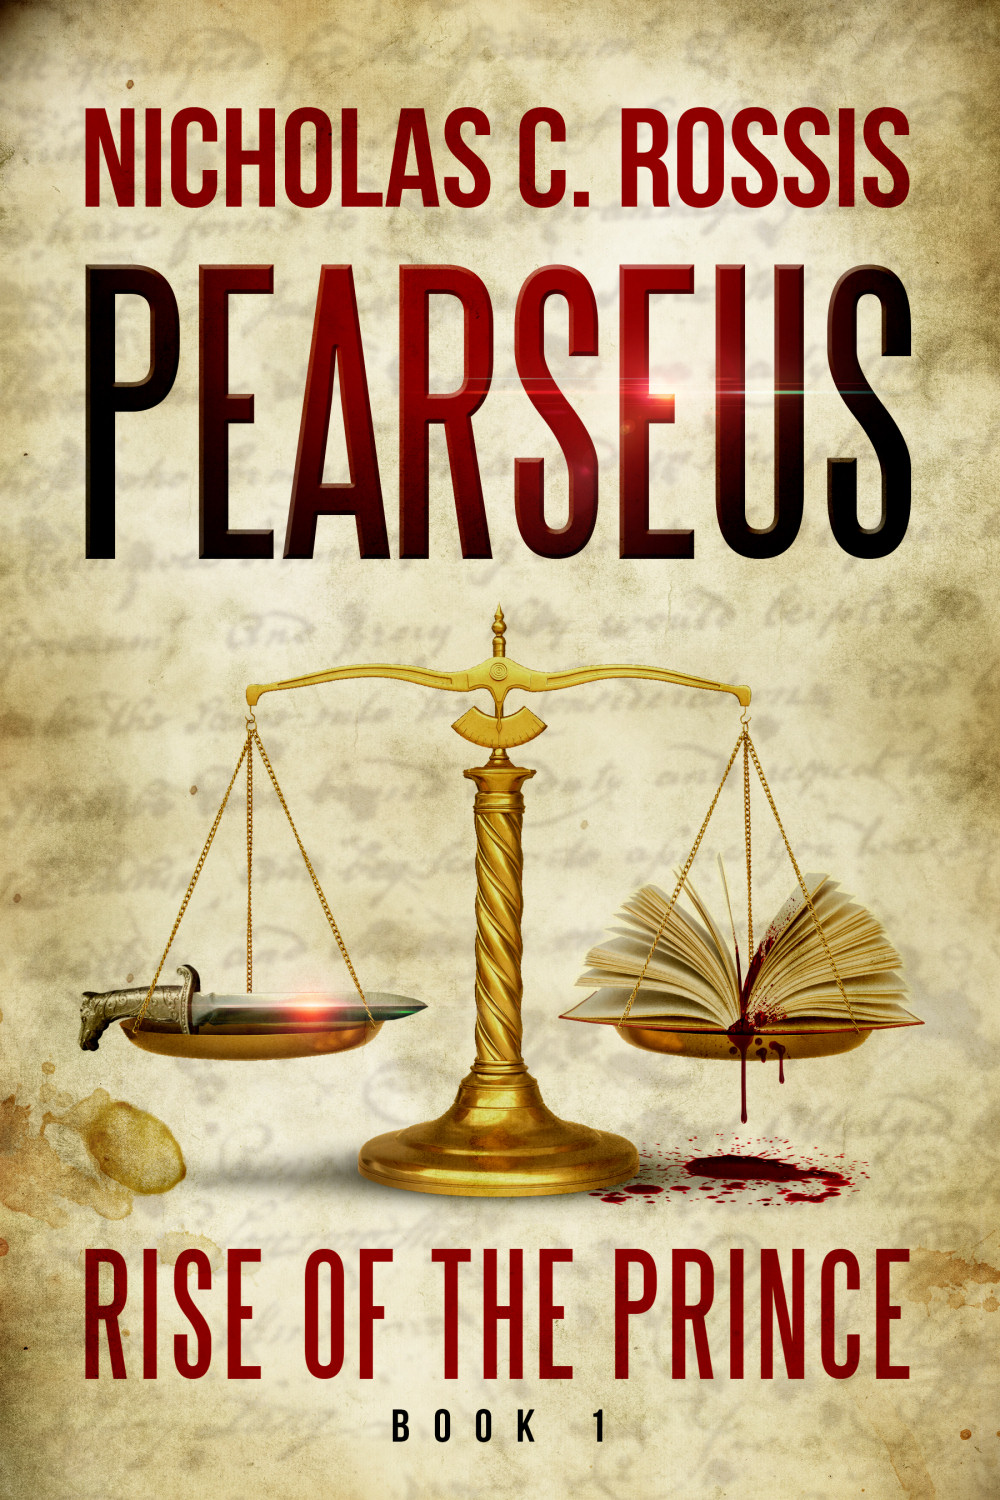 Pearseus: Rise of the Prince | From the reader blog of Nicholas C. Rossis, author of children's books, fantasy and science fiction